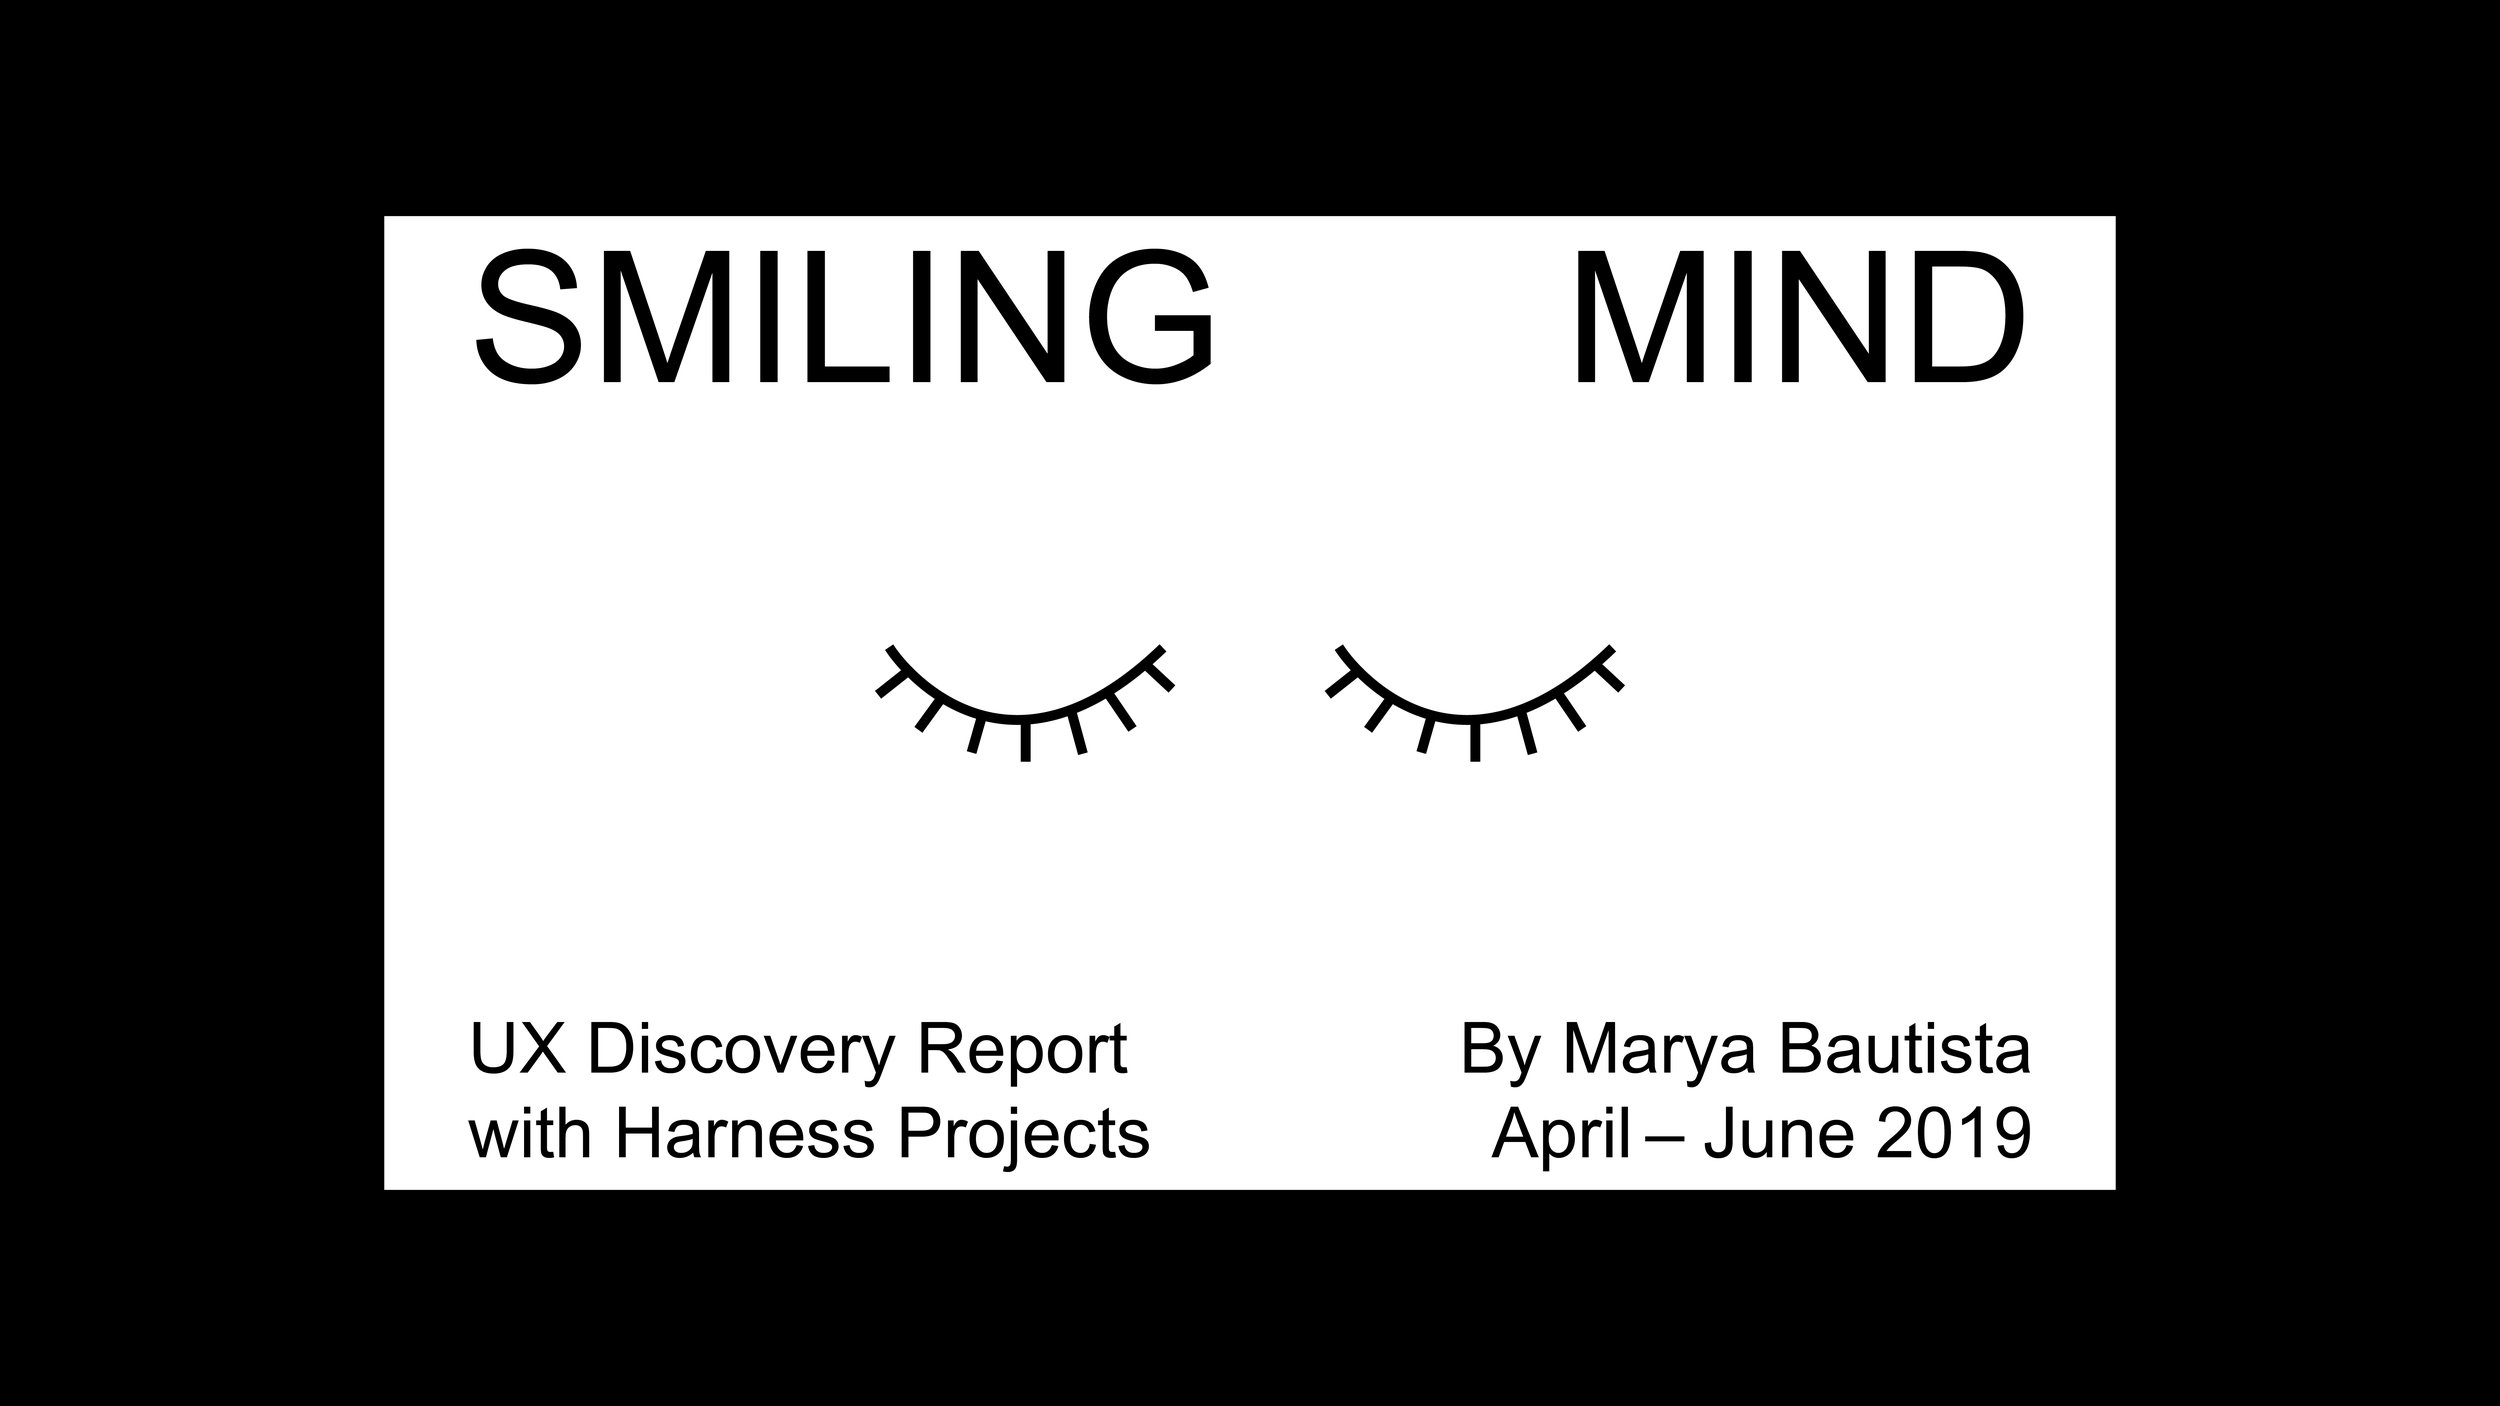 SMILING MIND UX DISCOVERY REPORT  Harness Projects and Smiling Mind are collaborating to investigate how the program can better support the needs of Advanced Users to ultimately encourage user engagement and usage.